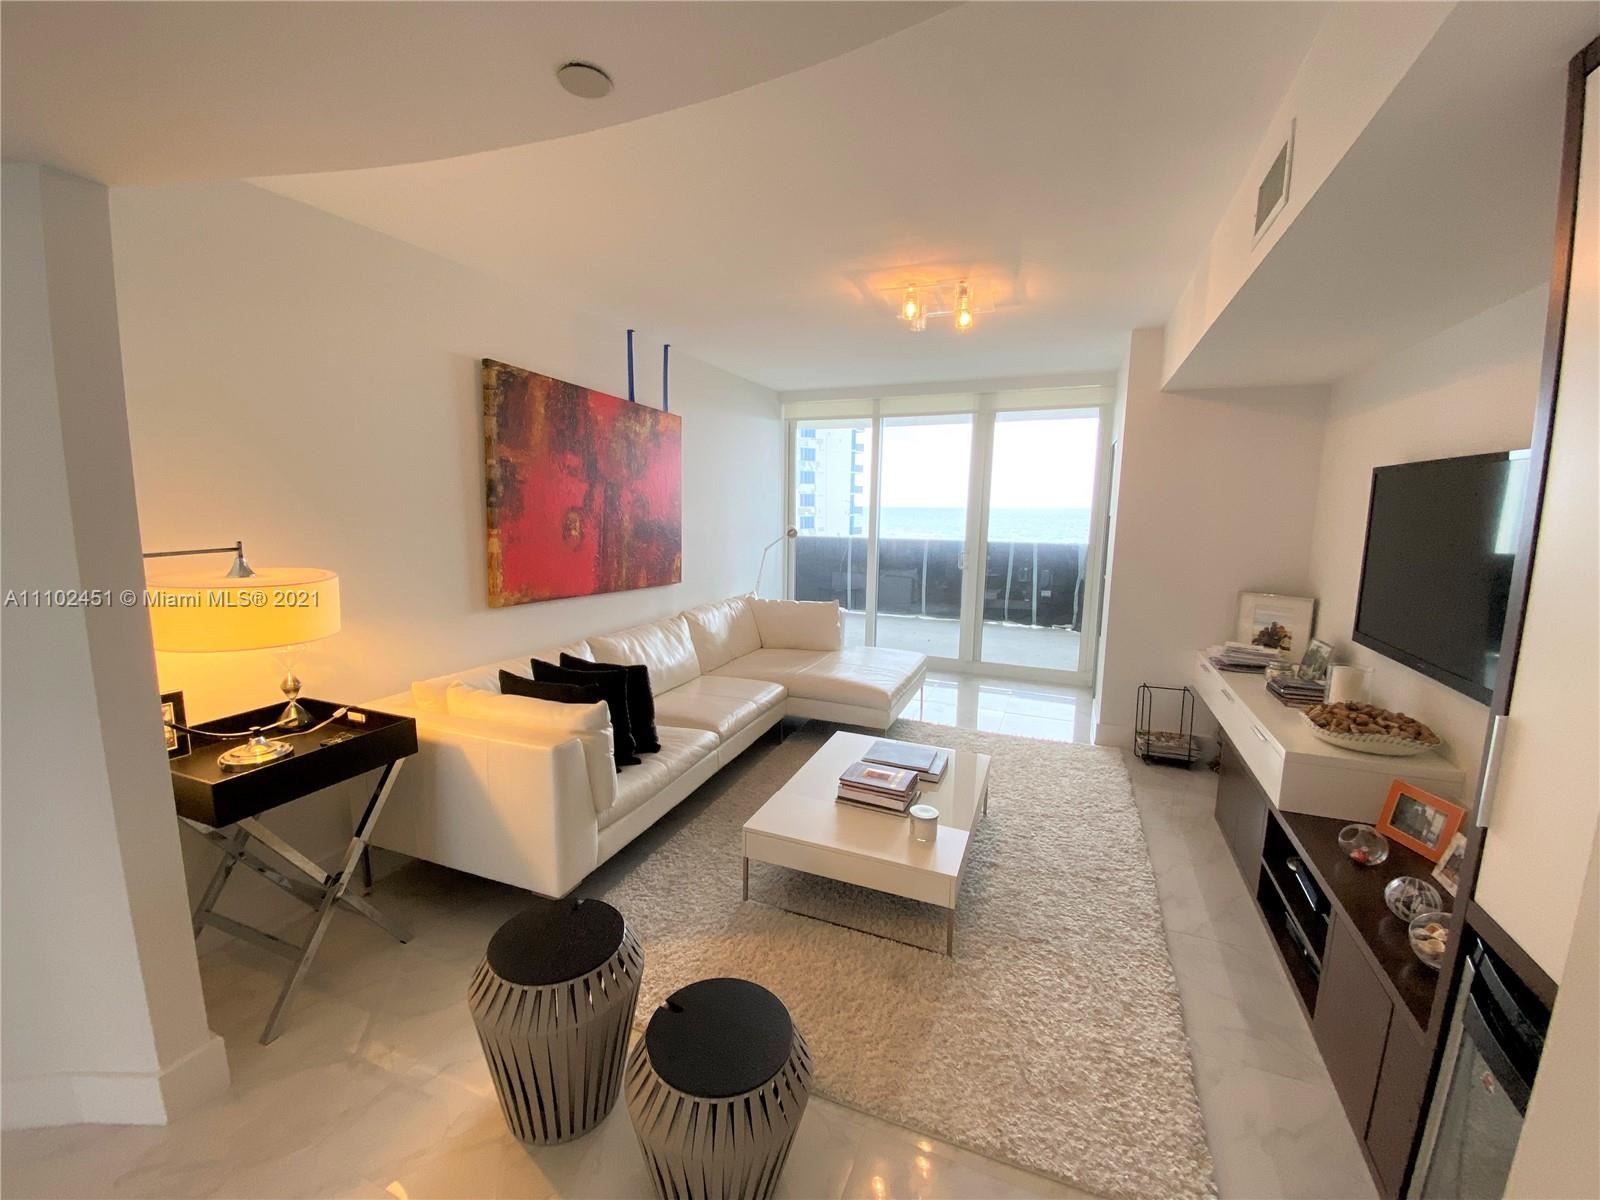 19111 Collins Ave #807, Sunny Isles, FL 33160 - #: A11102451